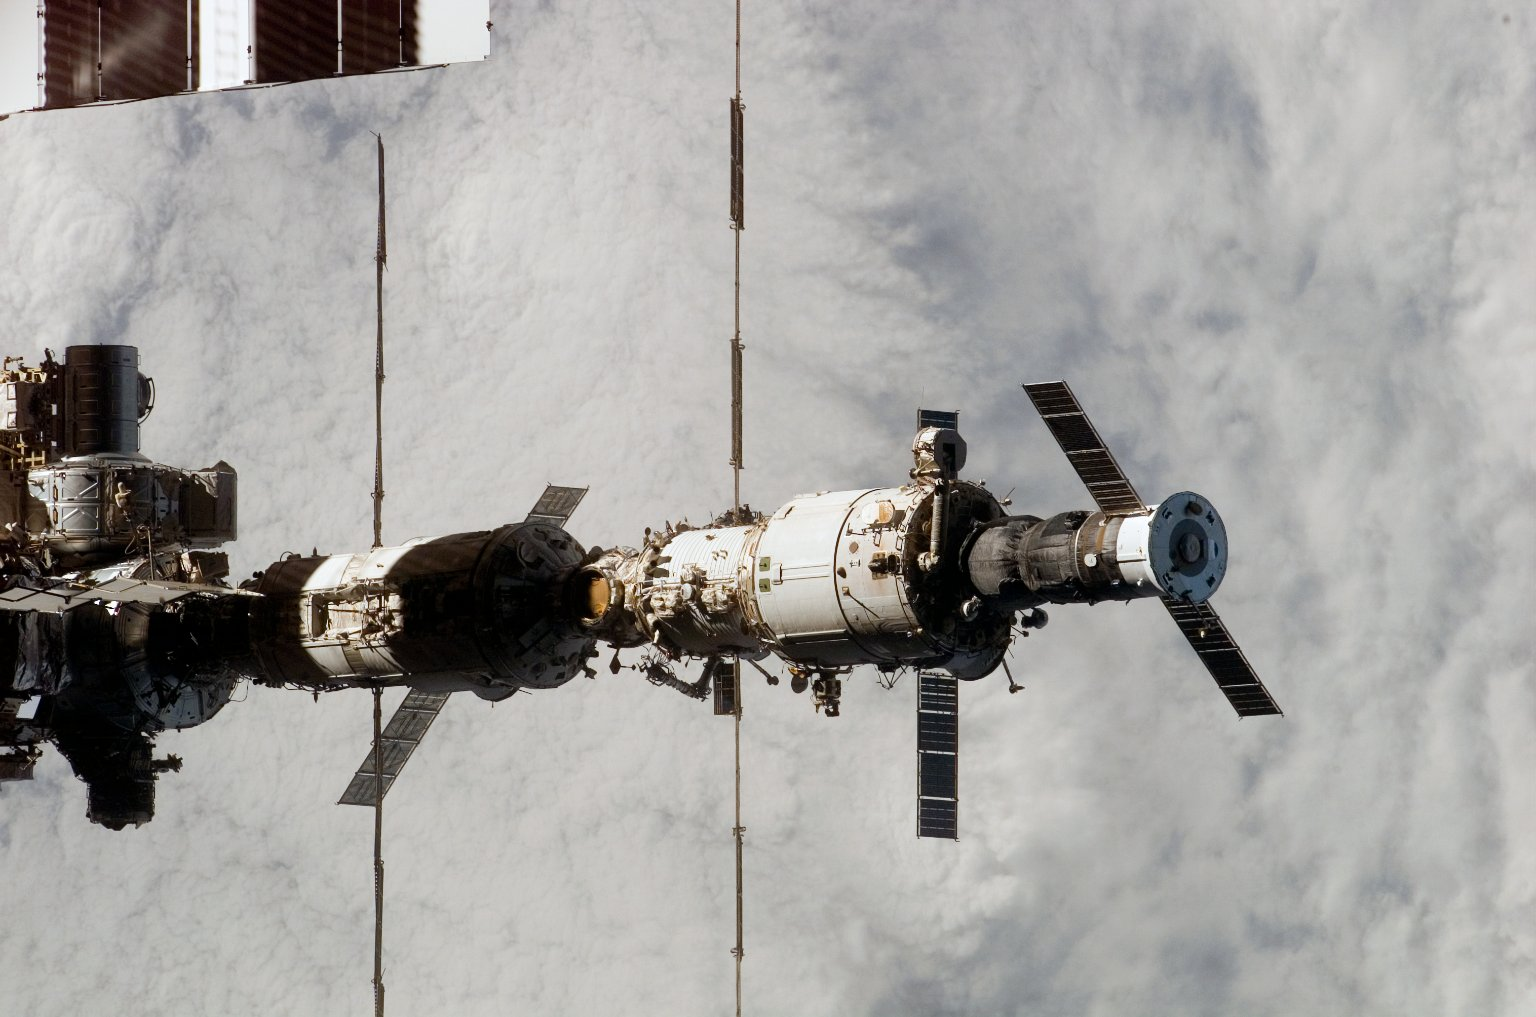 View of the ISS from the orbiter during separation on STS-121